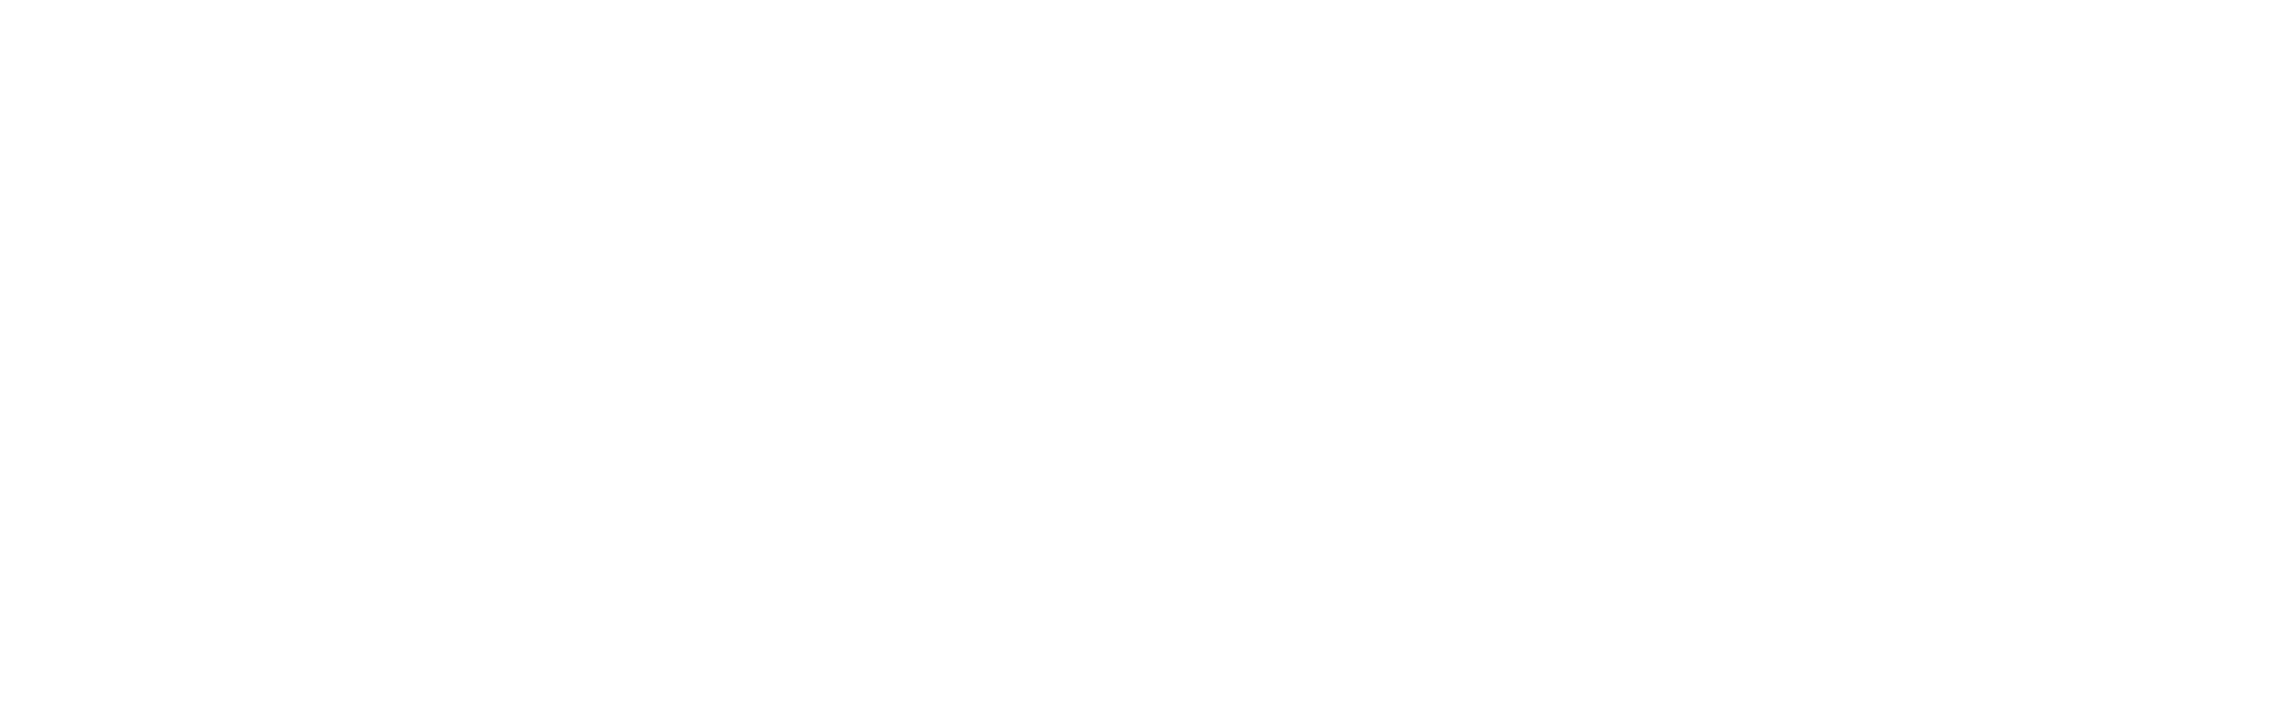 Navtech Practice Solutions